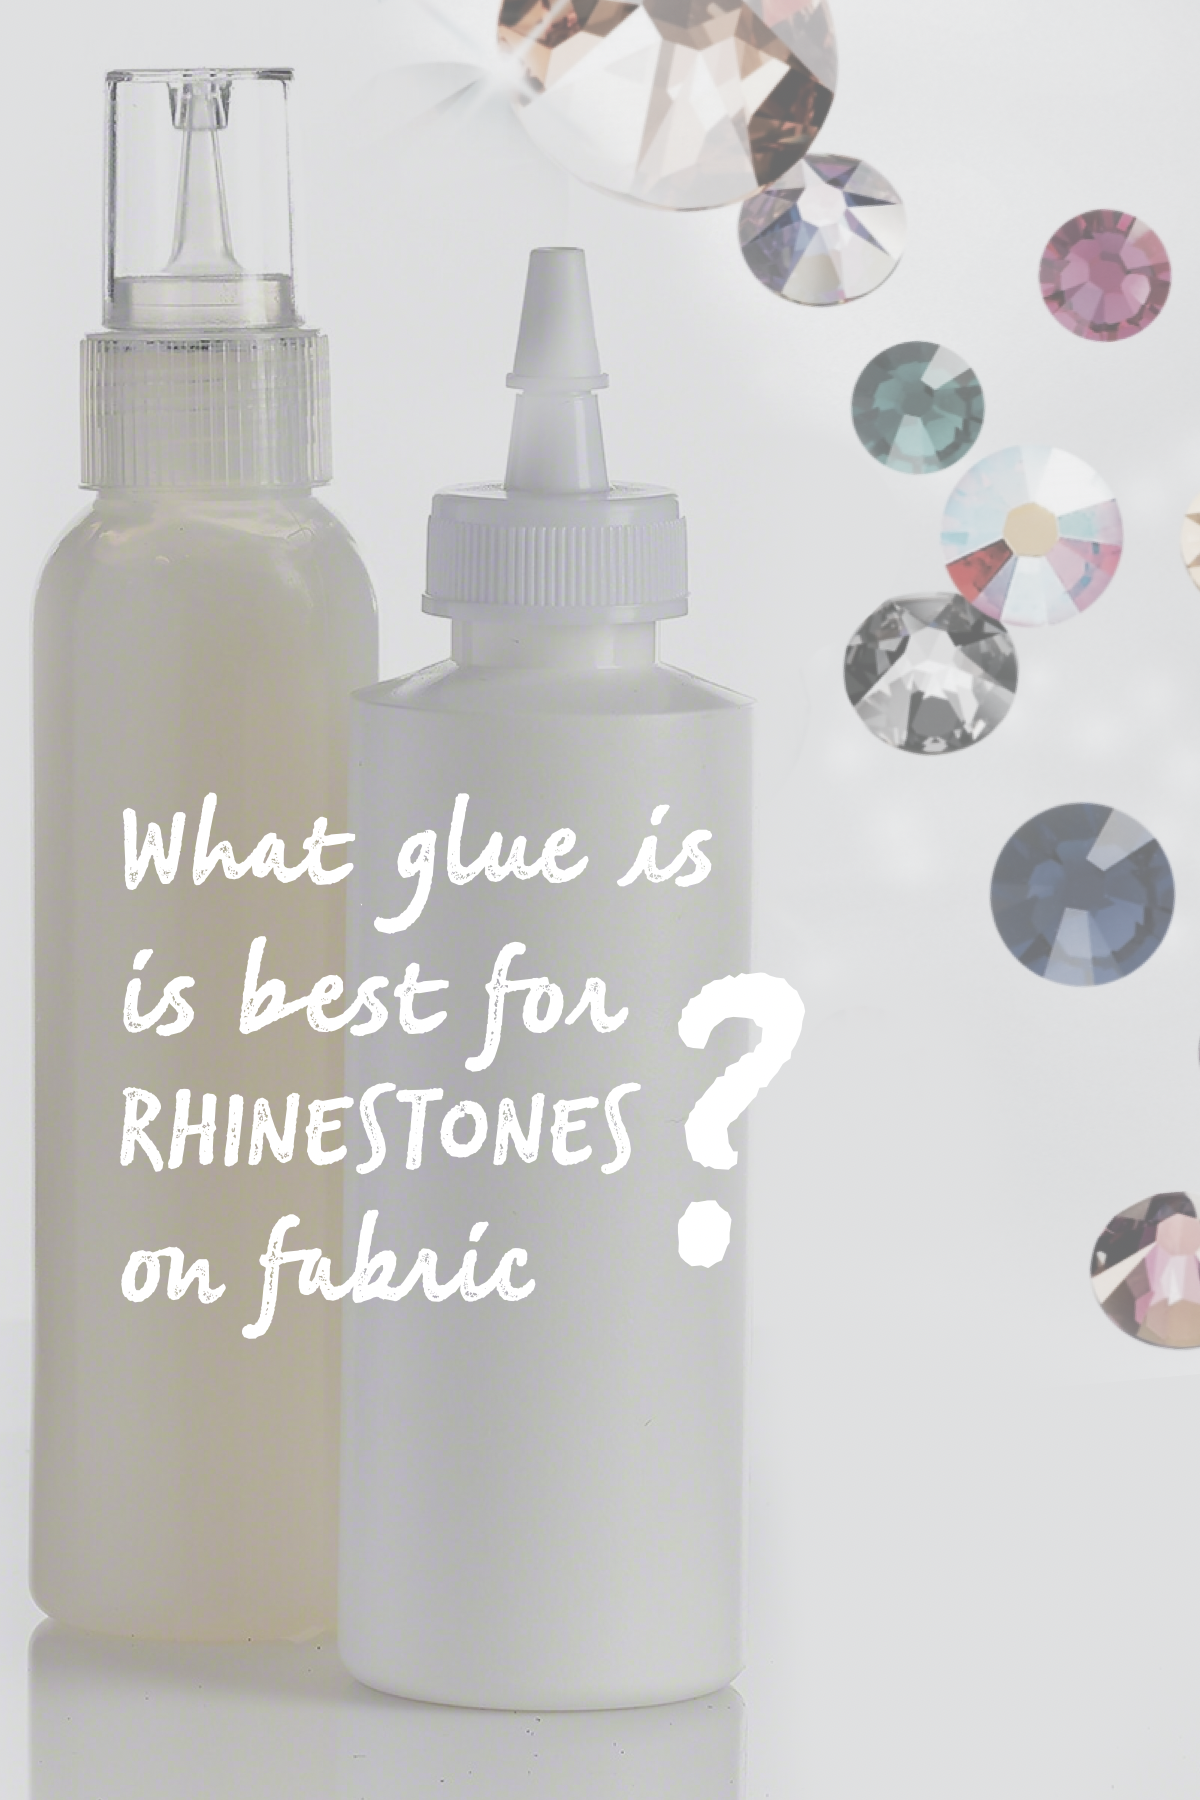 glue is best for rhinestones on fabric